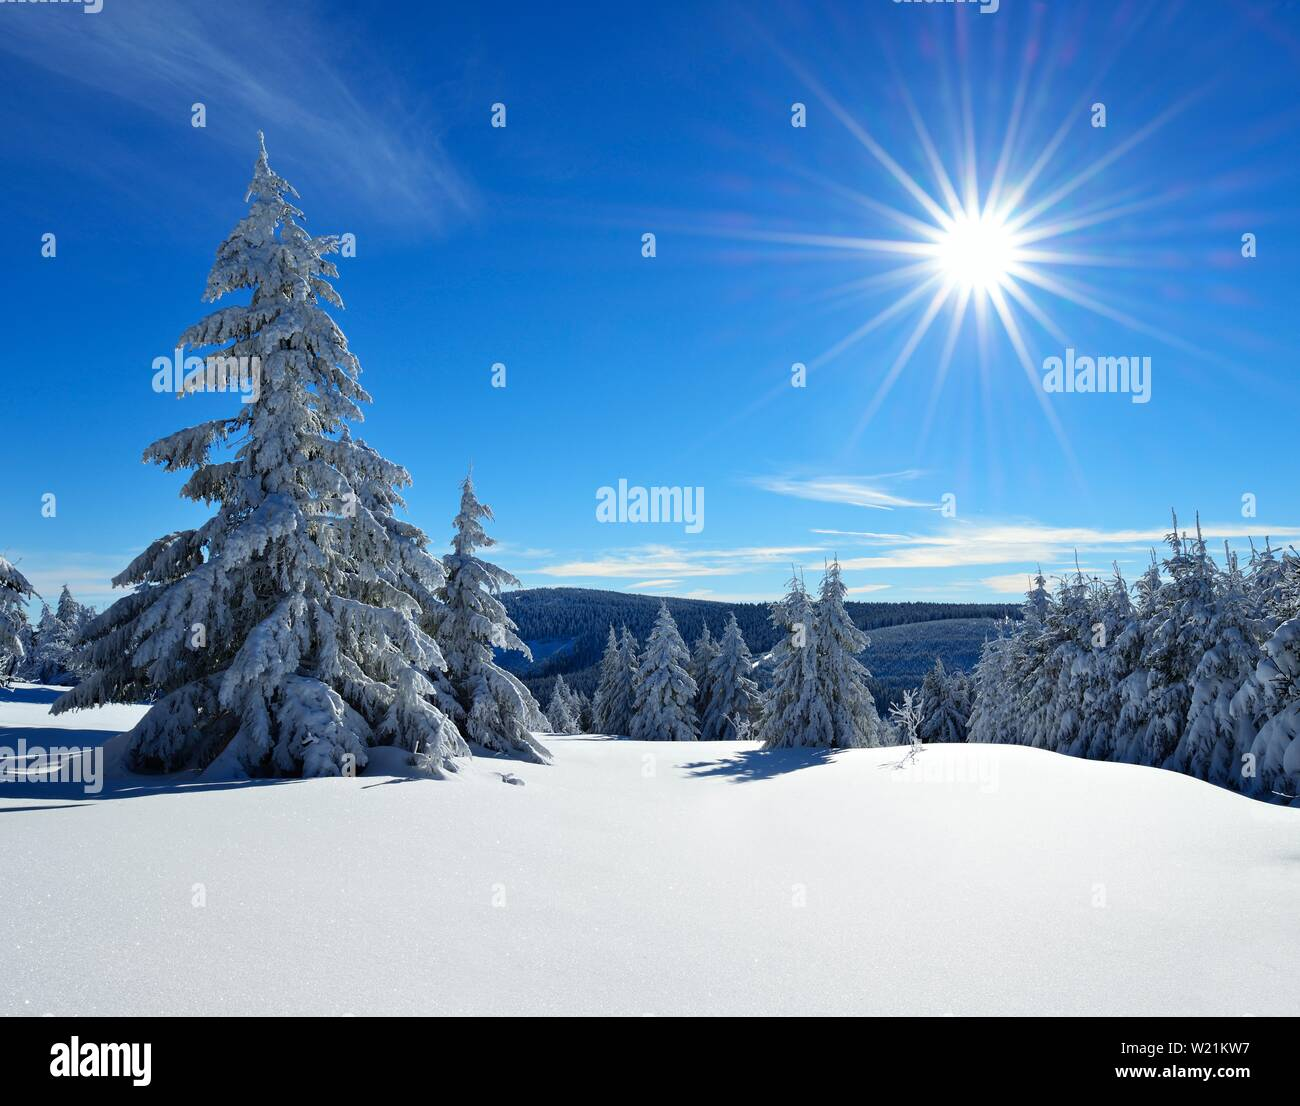 Snow-covered winter landscape, spruces covered with snow at morning sun, Fichtelberg near Oberwiesenthal, Erzgebirge, Saxony, Germany - Stock Image